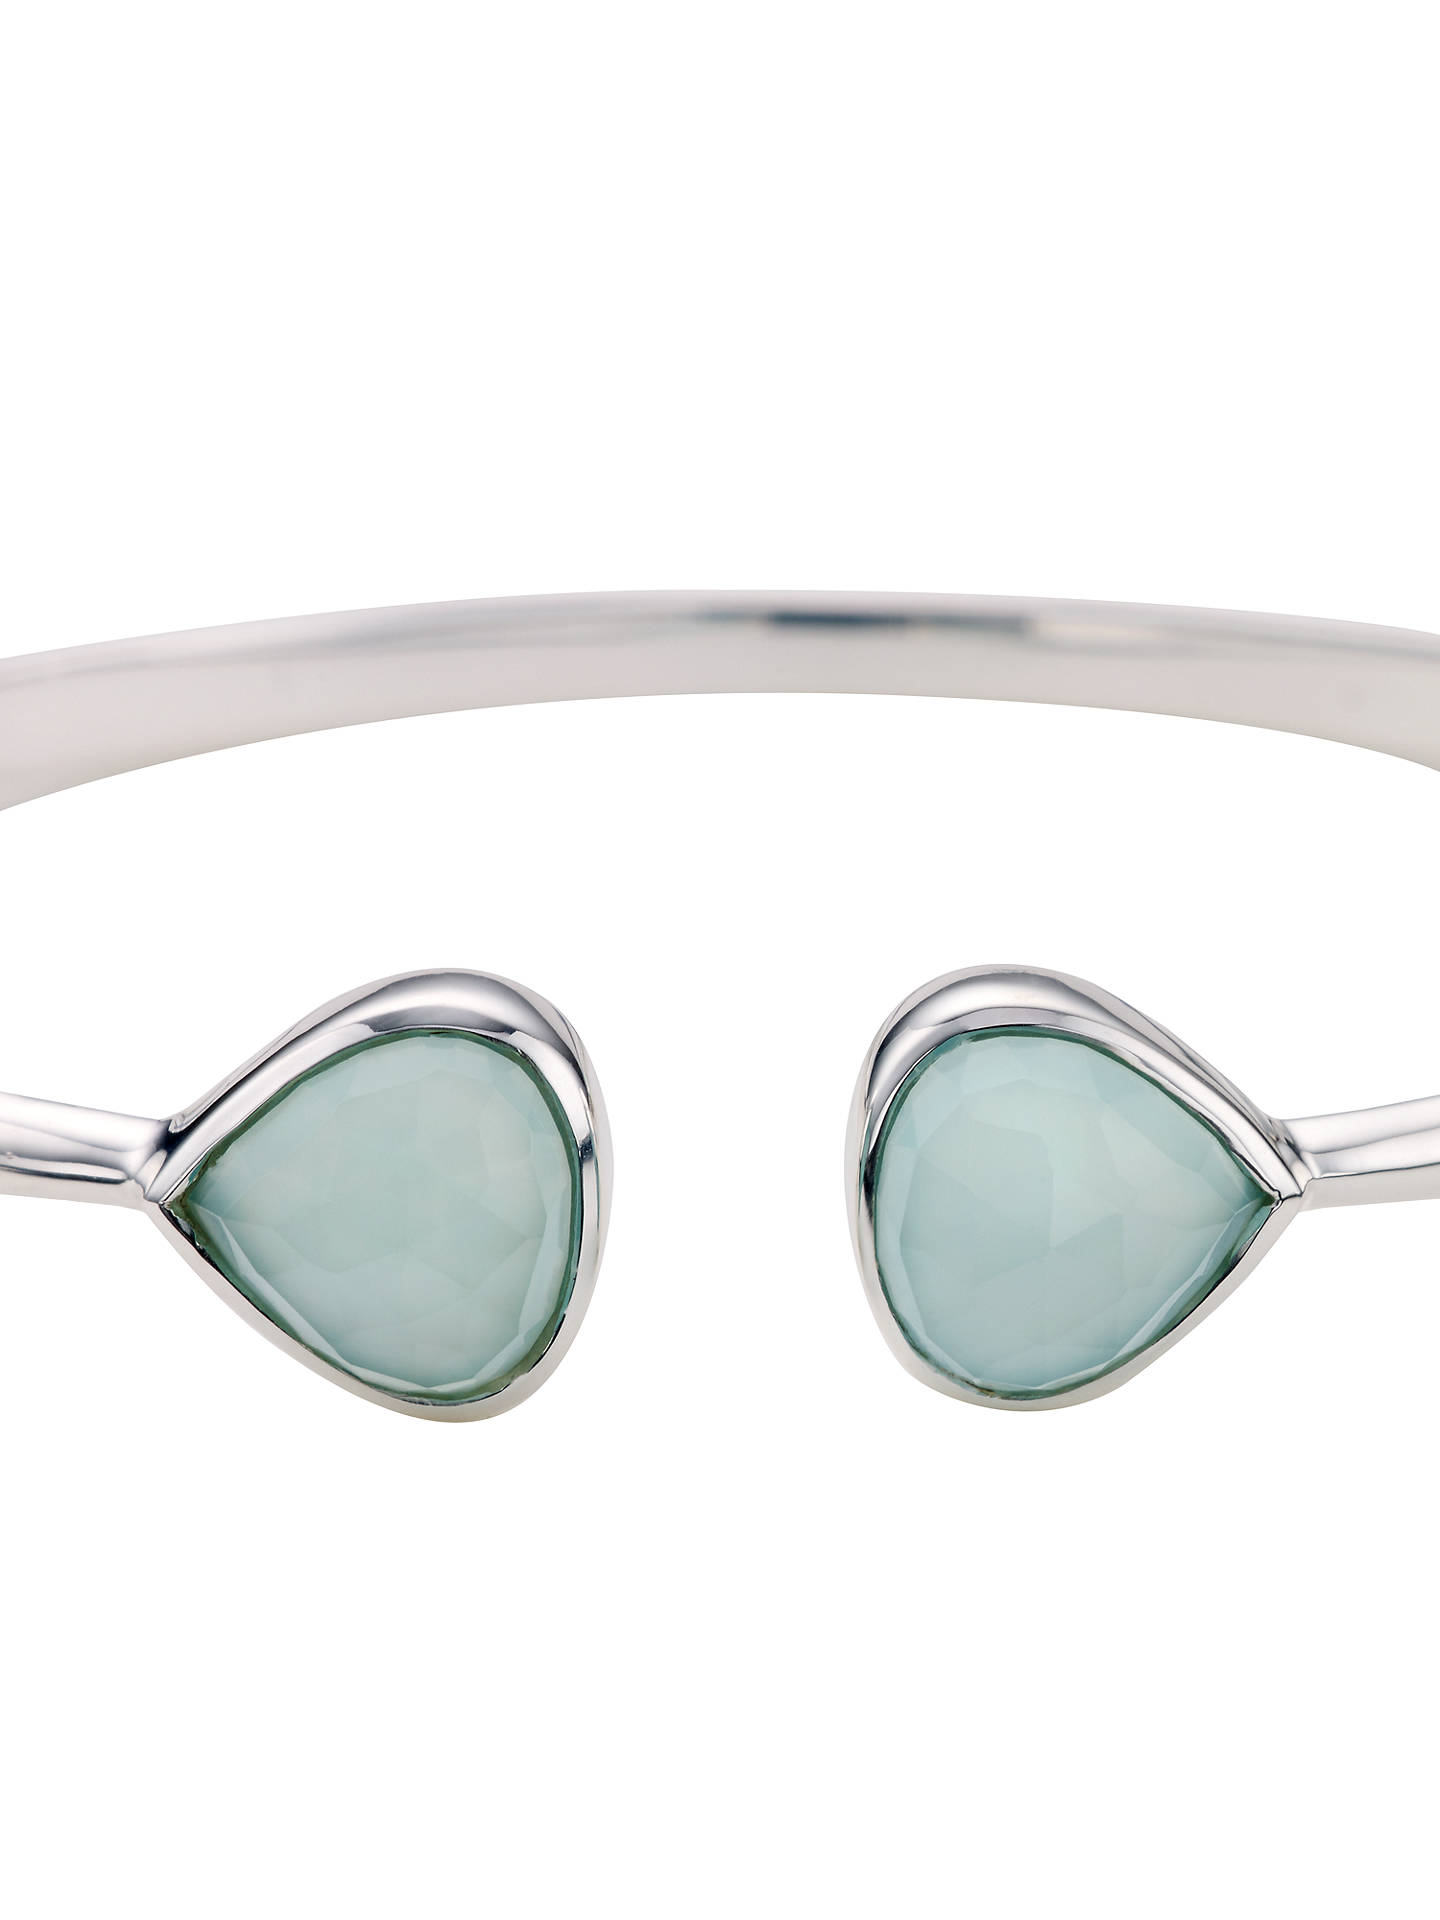 BuyJohn Lewis & Partners Hinged Semi-Precious Stone Bangle, Aqua Chalcedony Online at johnlewis.com